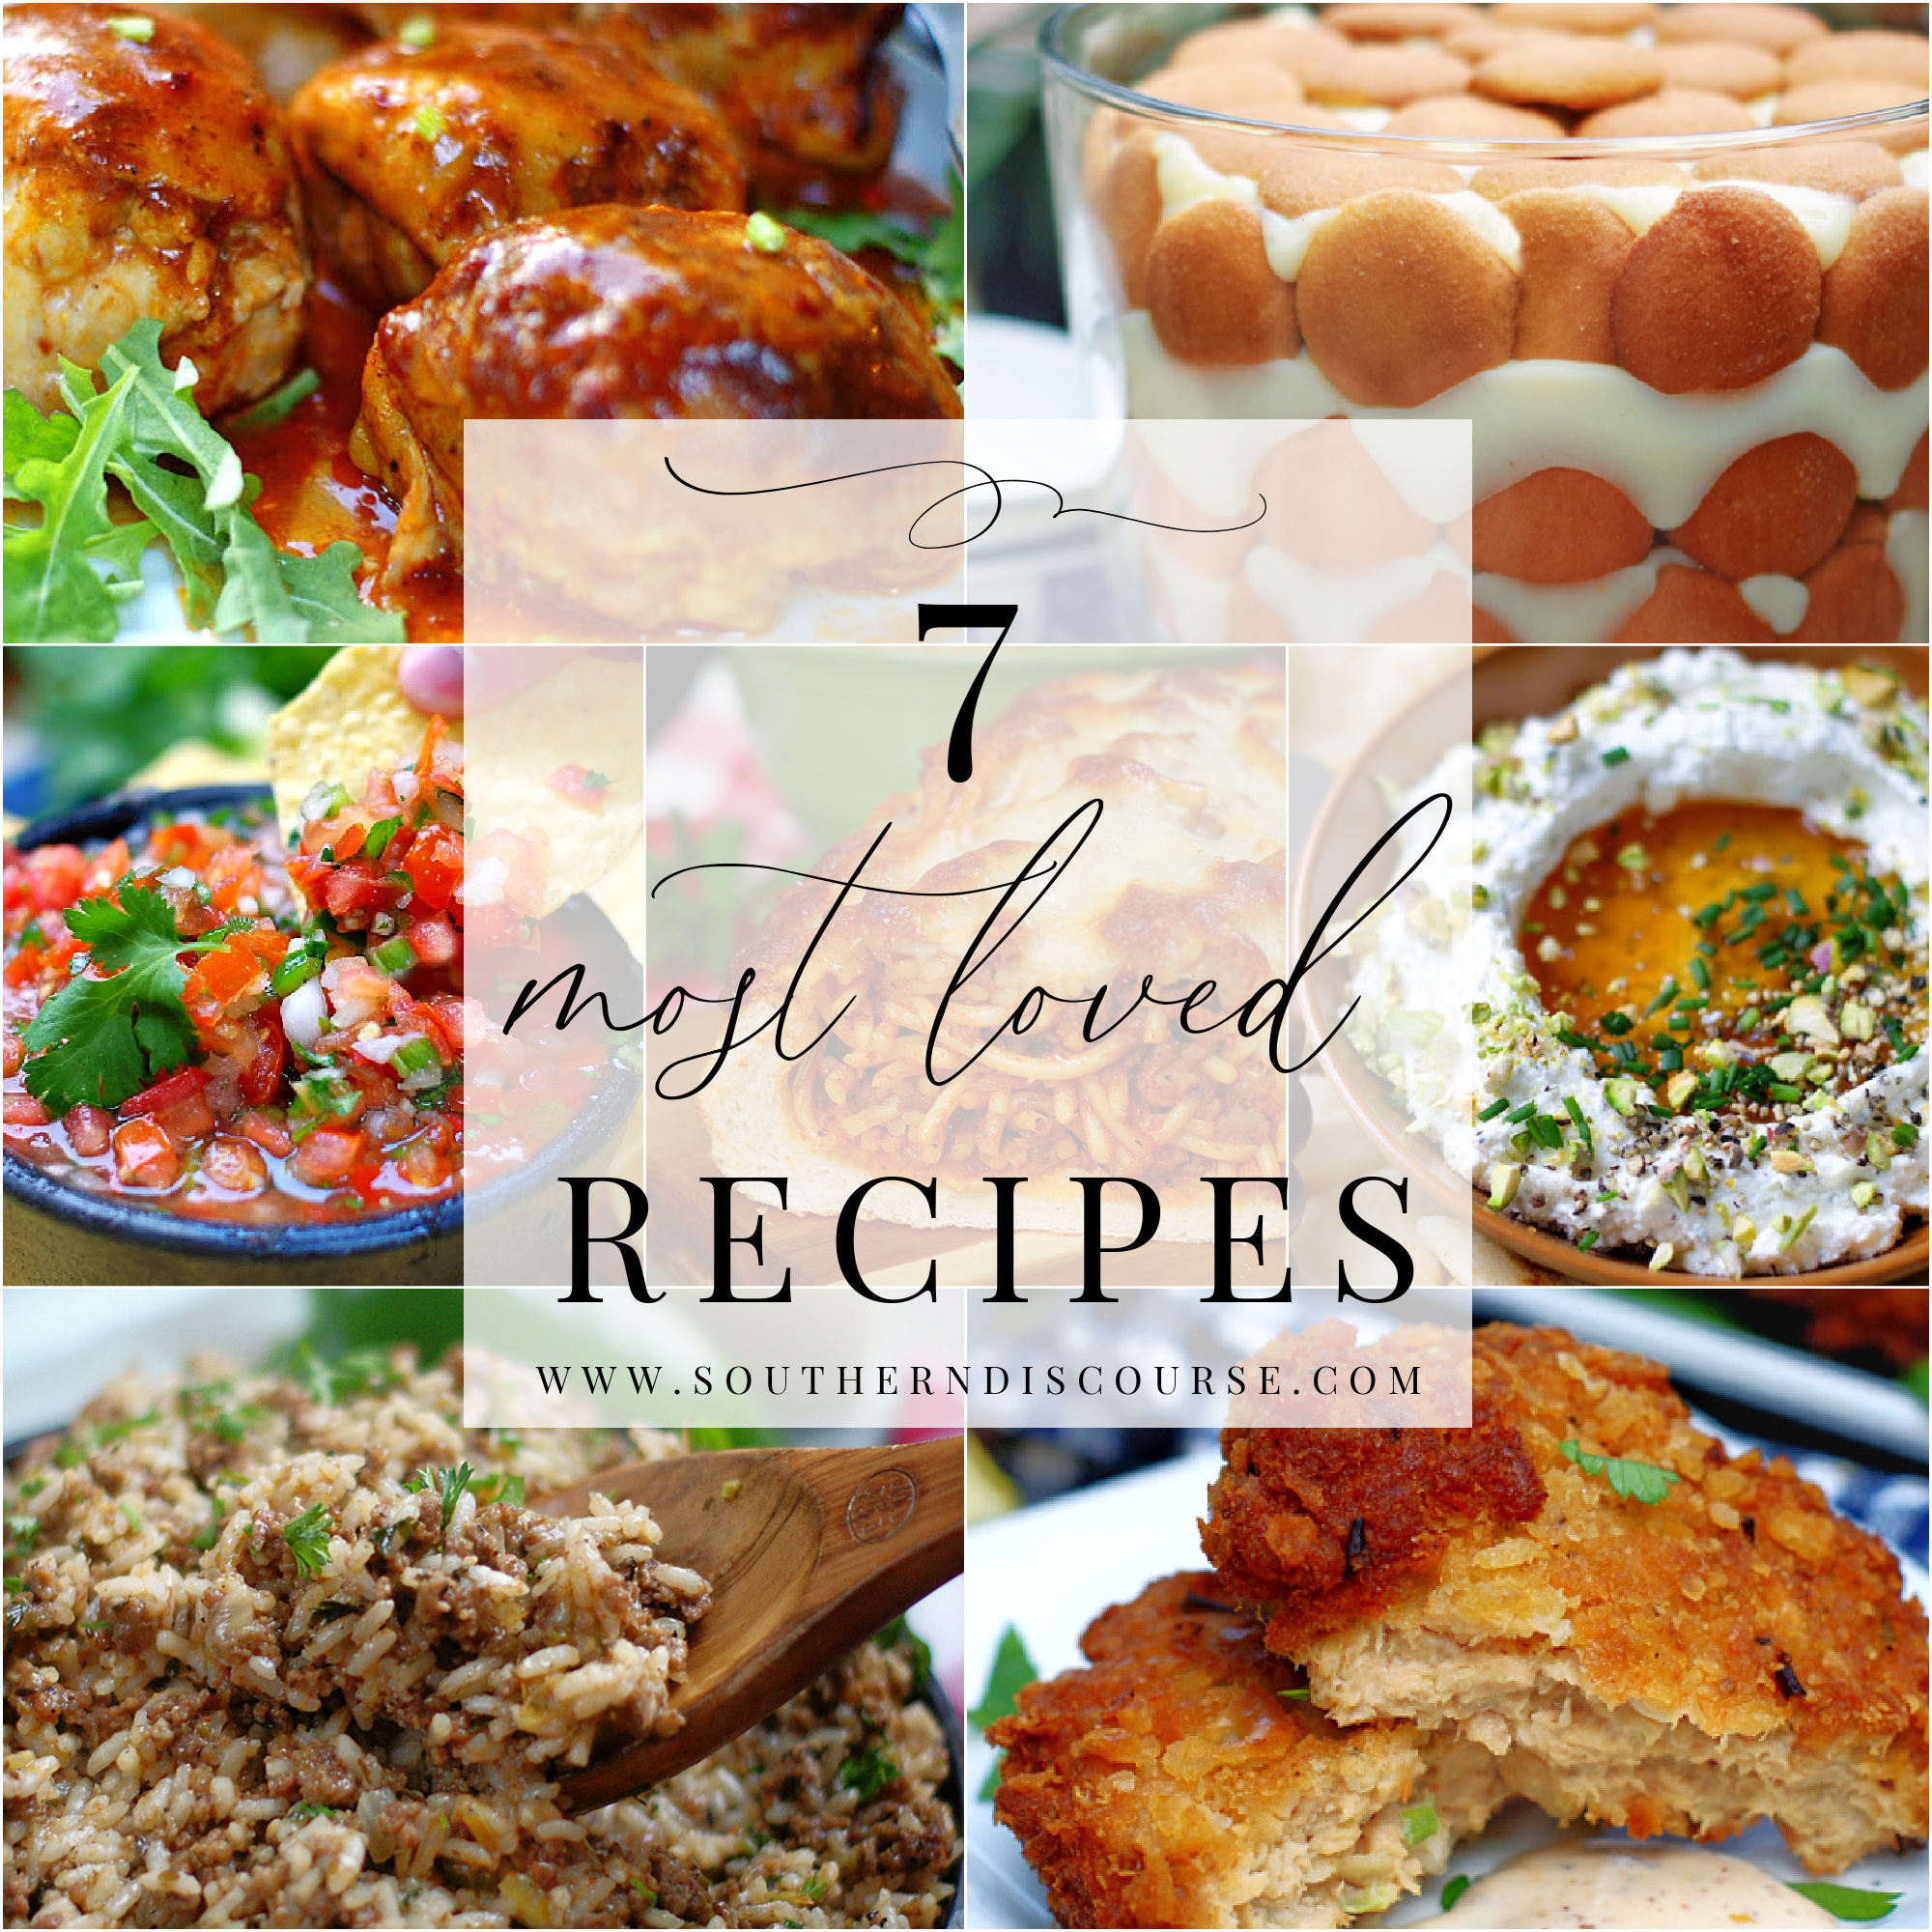 Top reader favorite recipes.  Recipes our top fans love and make again and again!  From new recipes like Southern Banana Pudding from scratch to old favorites like Louisiana Dirty Rice, salsa, whipped feta, salmon patties, spaghetti stuffed garlic bread. photo collage.